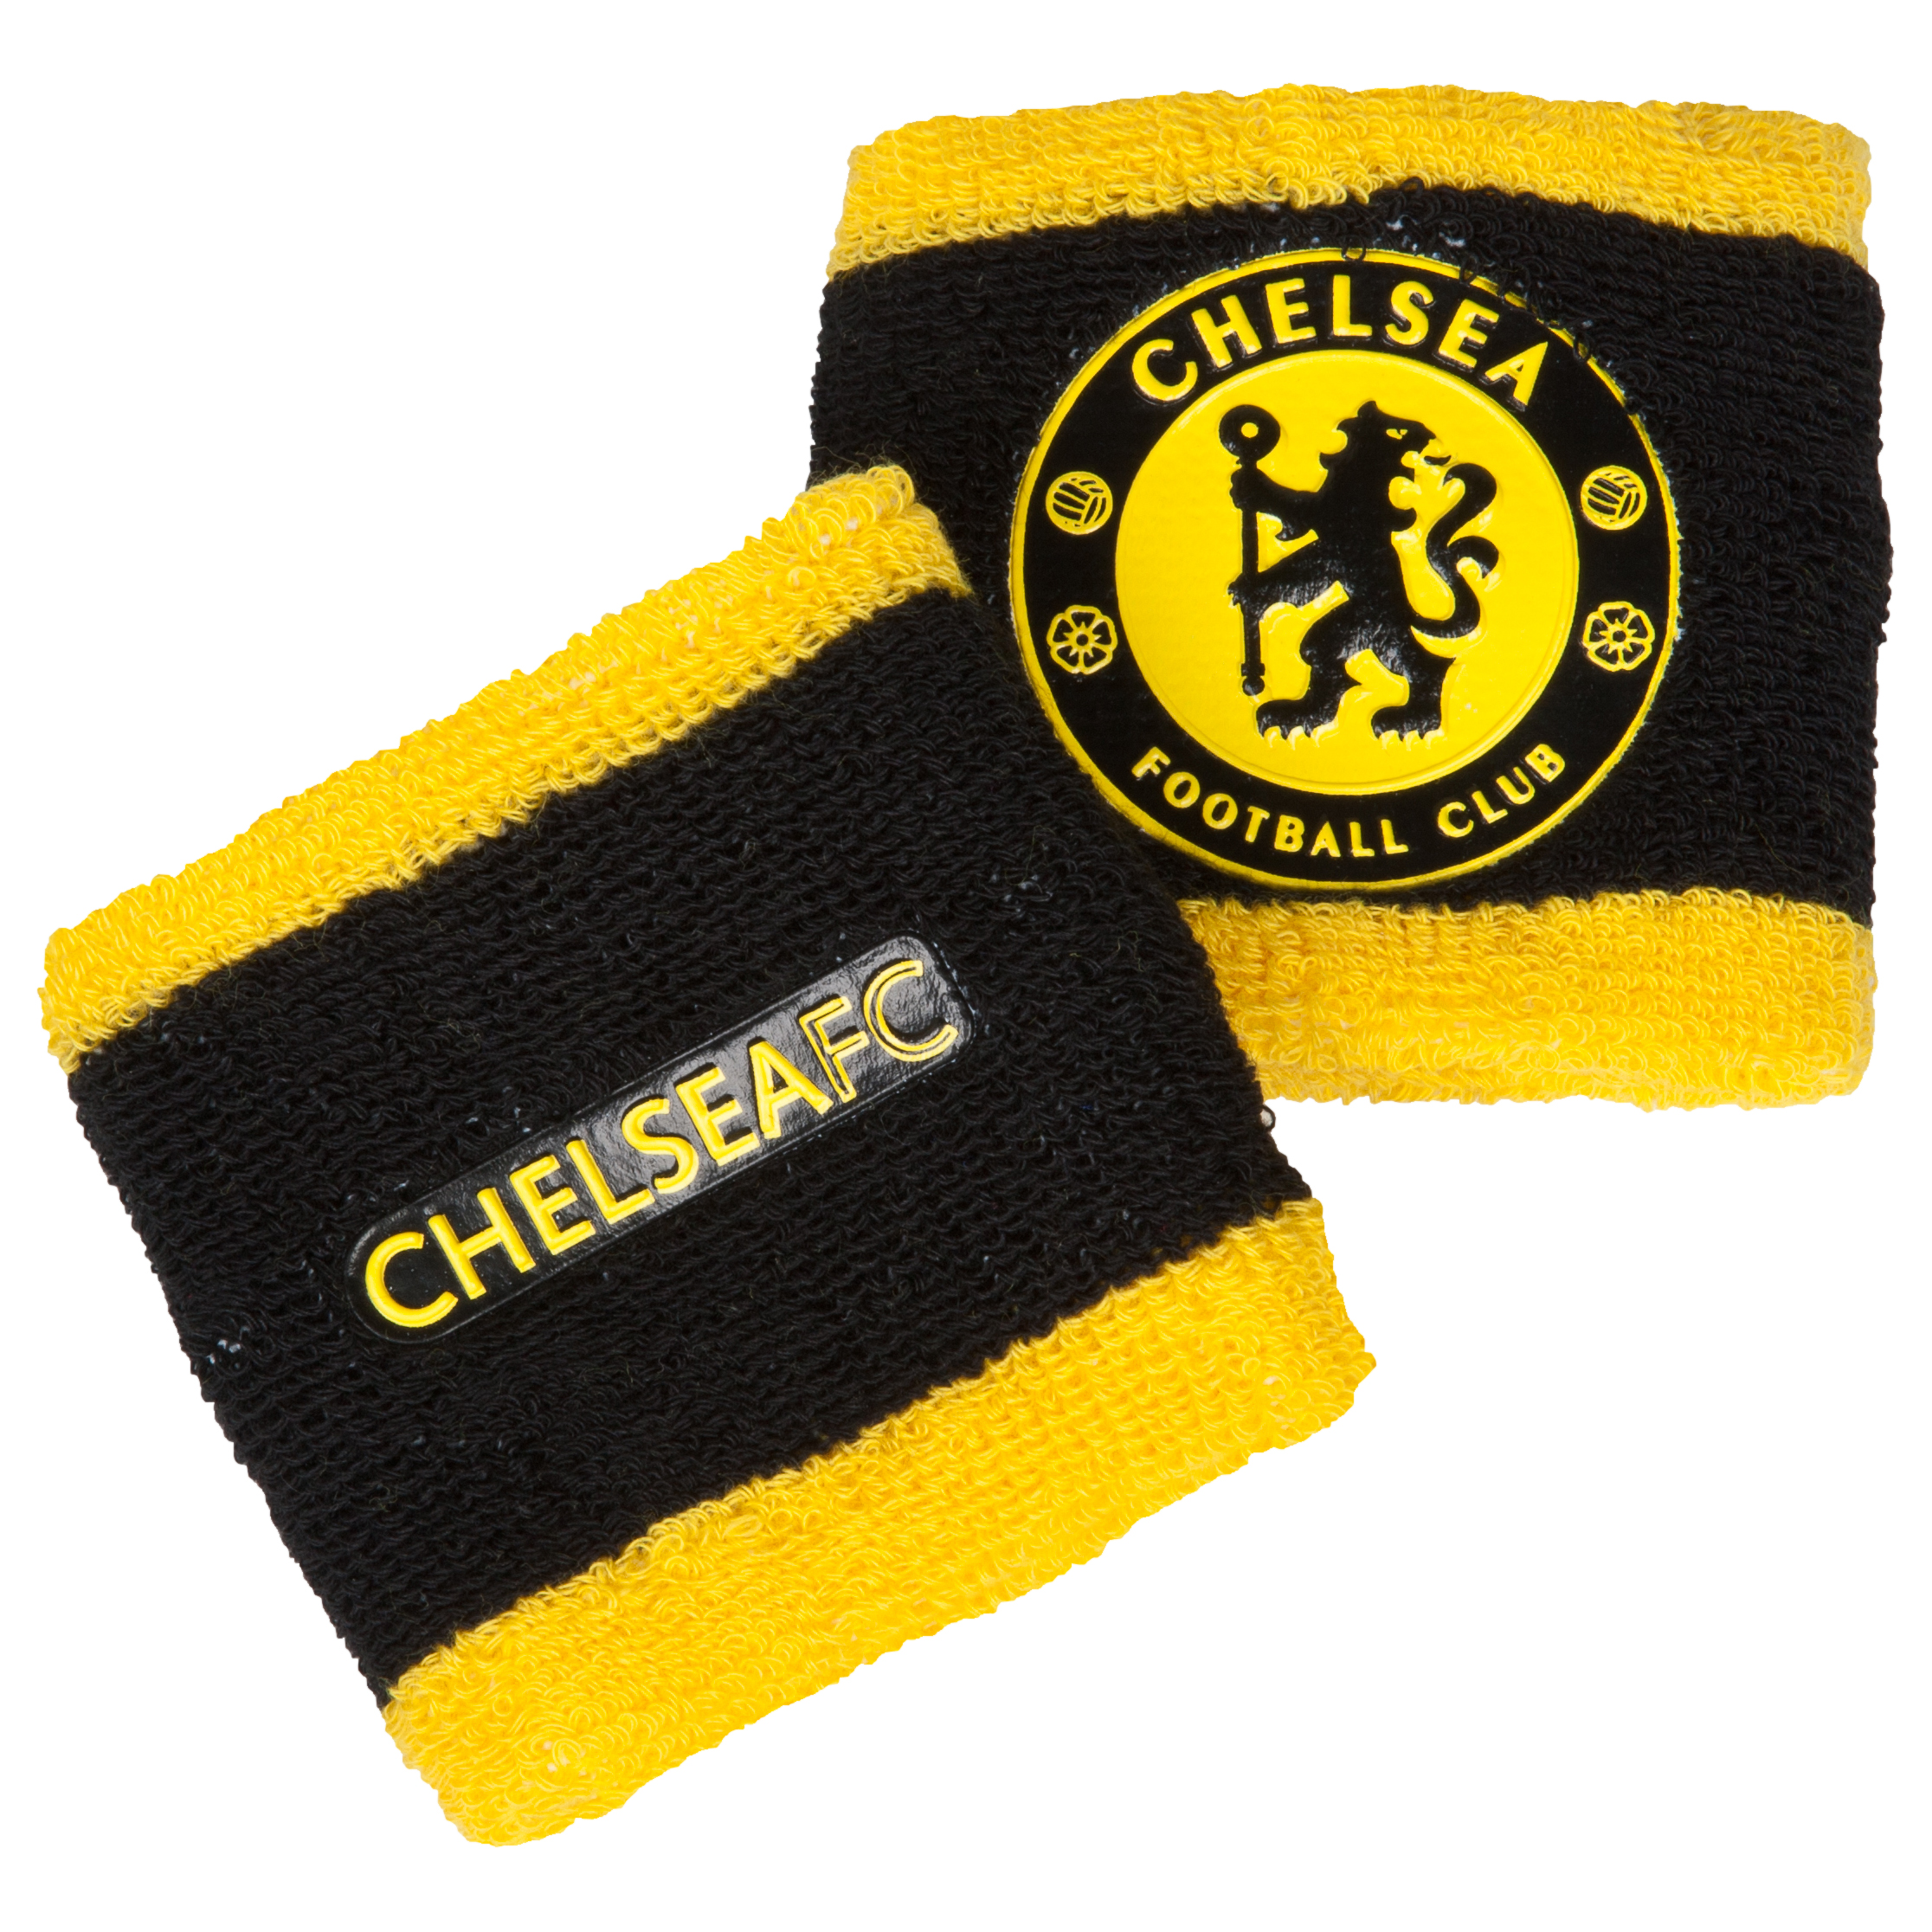 Chelsea Wristbands 2 Pack - Black/Yellow